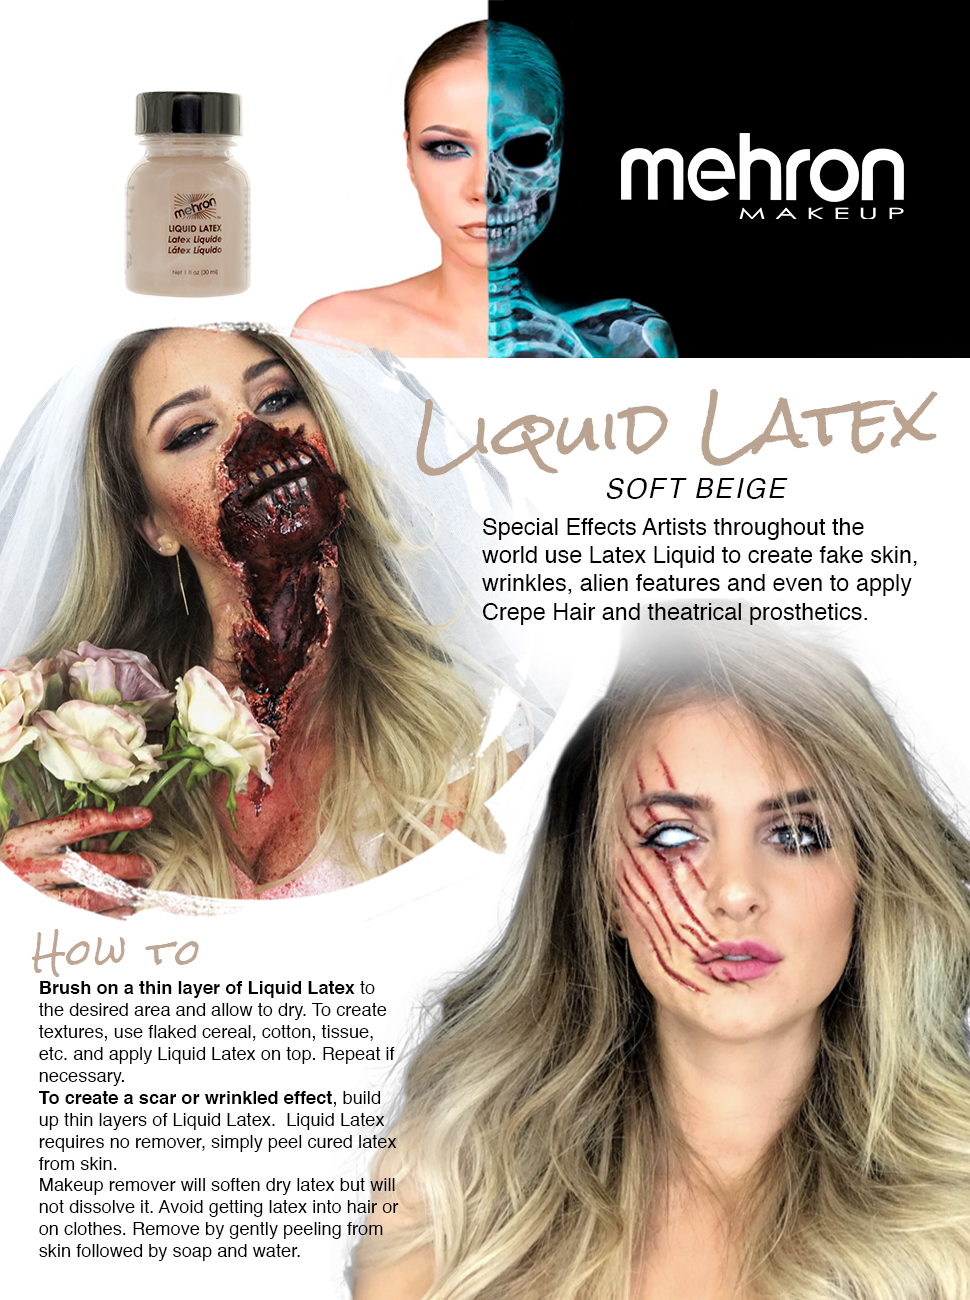 Amazon.com: Mehron Makeup Liquid Latex, Light Flesh (1 oz): Beauty